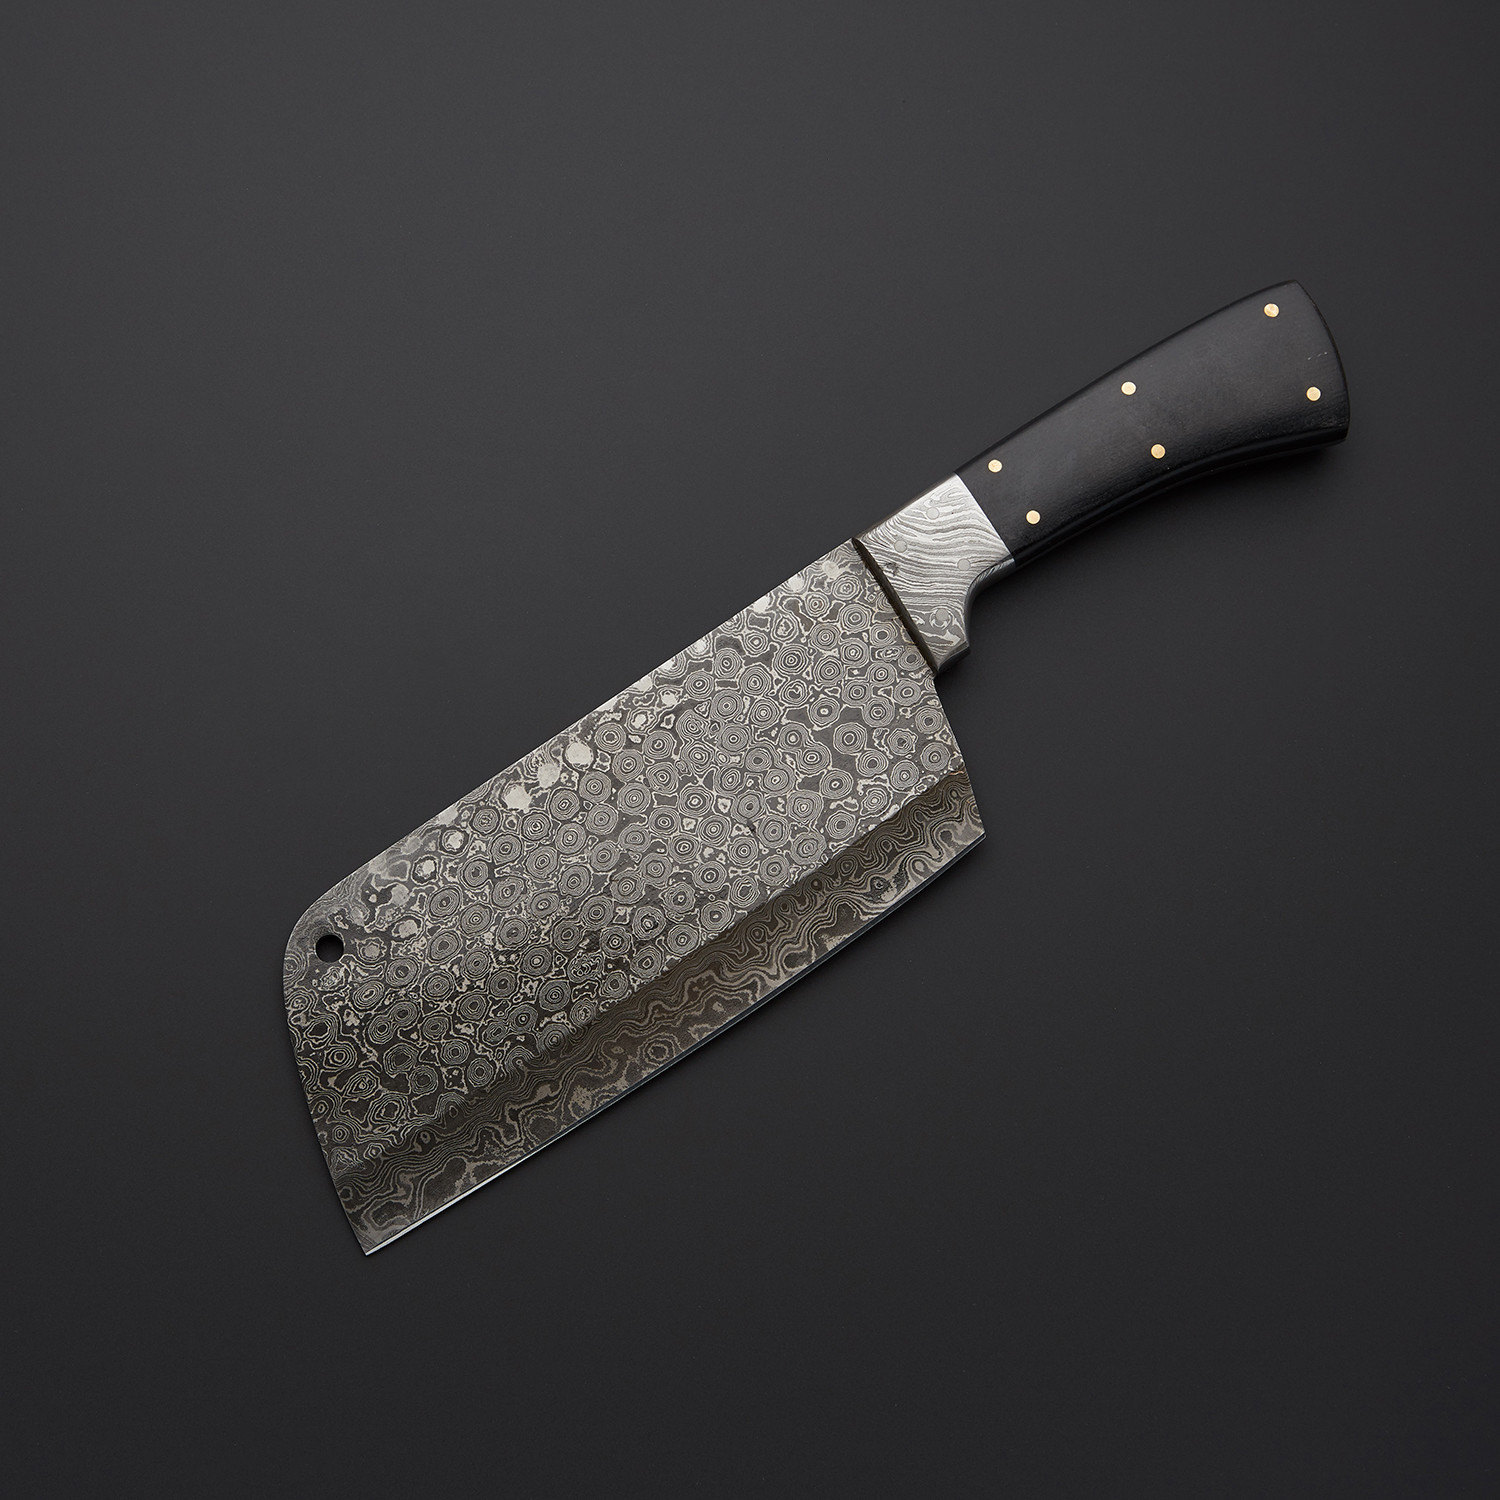 Chef S Knife Or Chinese Cleaver Enso Hd Vegetable Cleaver